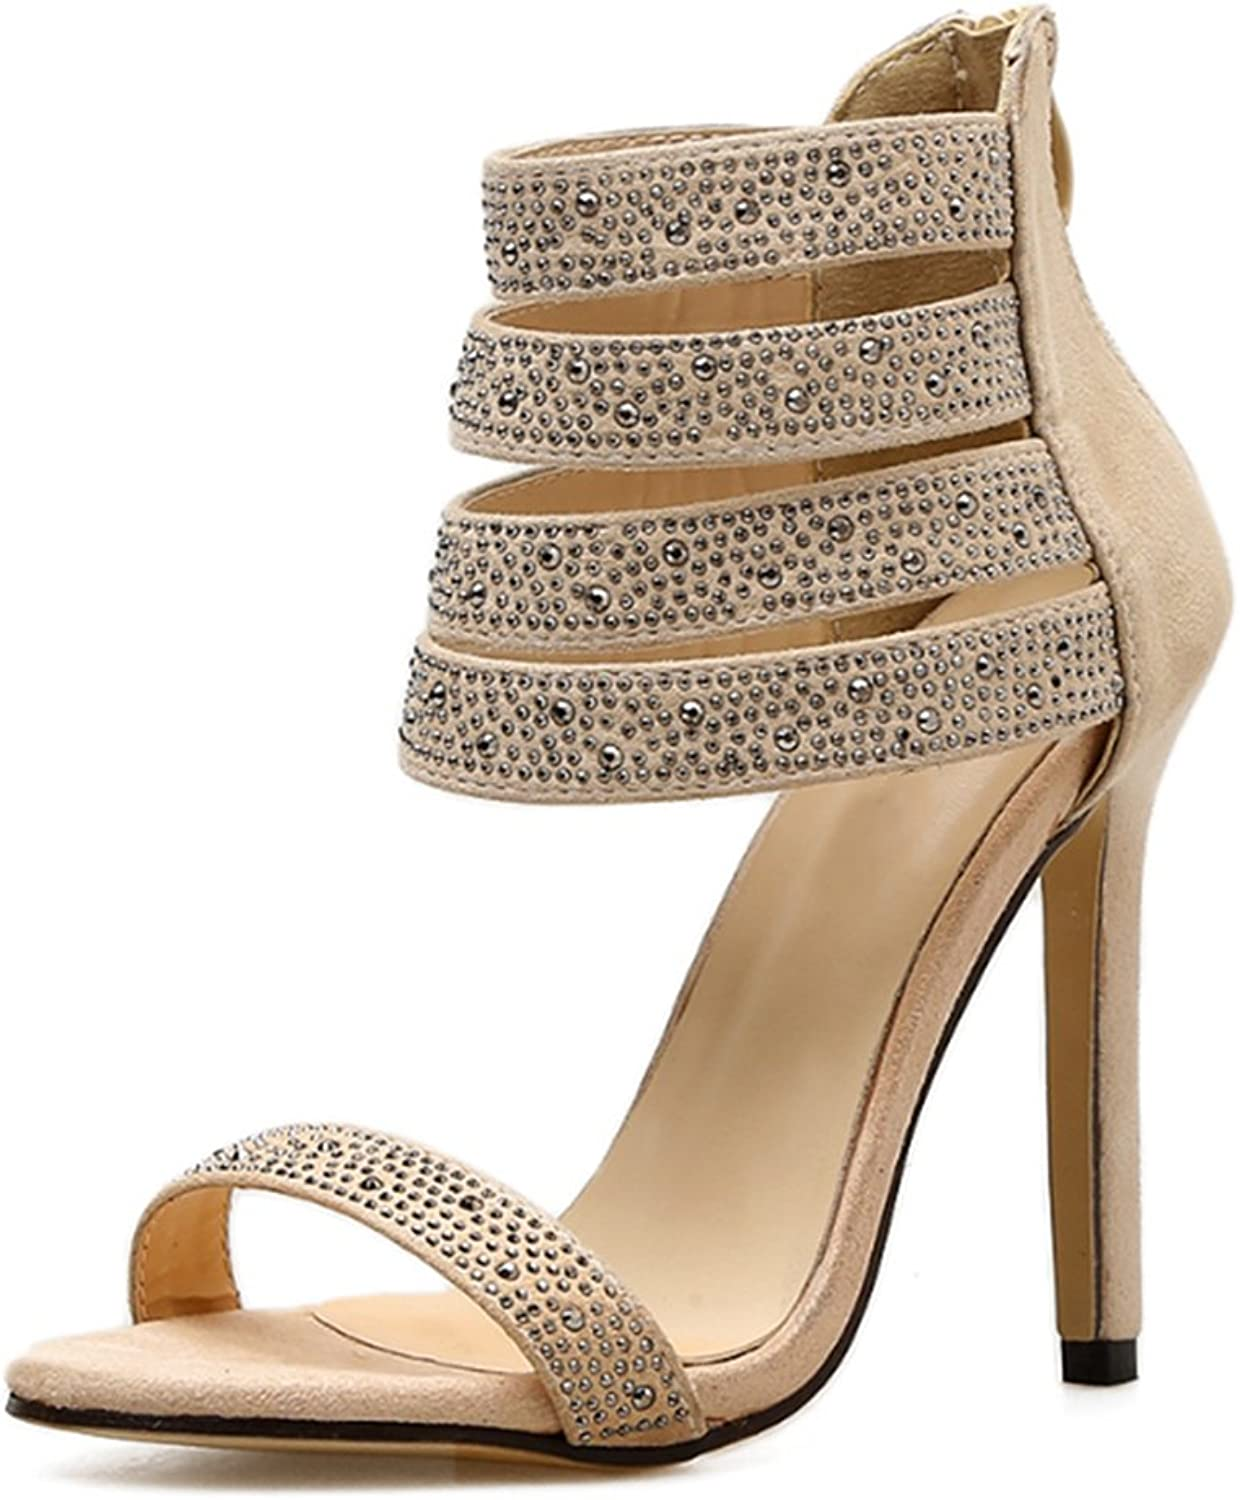 Womens Sandals Crystal High Heel Cut-Out Peep Toe Ankle Strap Party Dress shoes